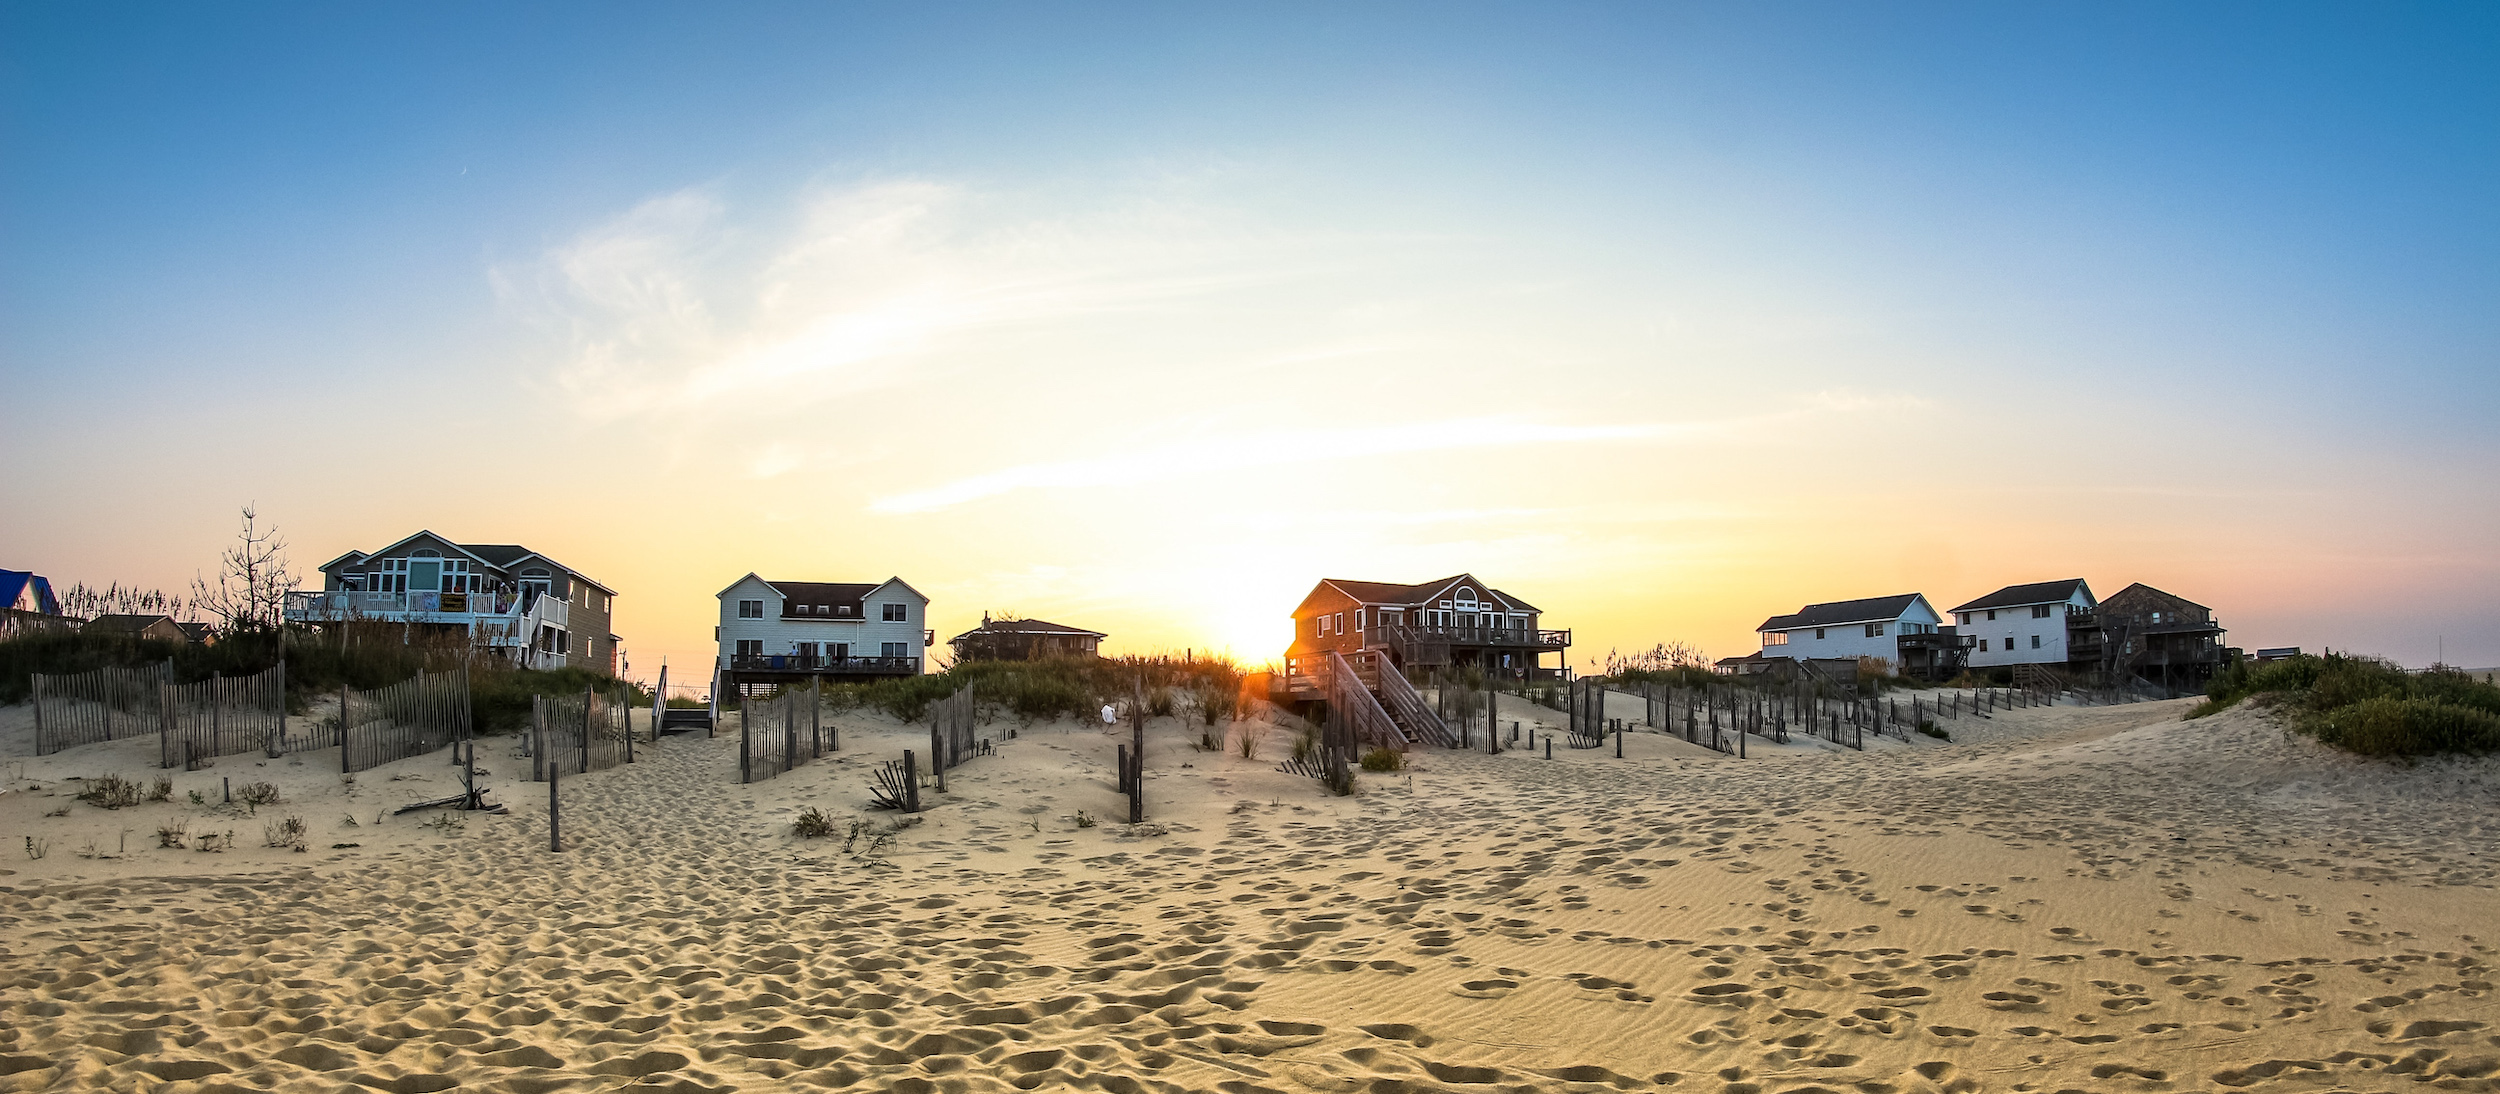 Best places to stay in the Outer Banks | Vrbo